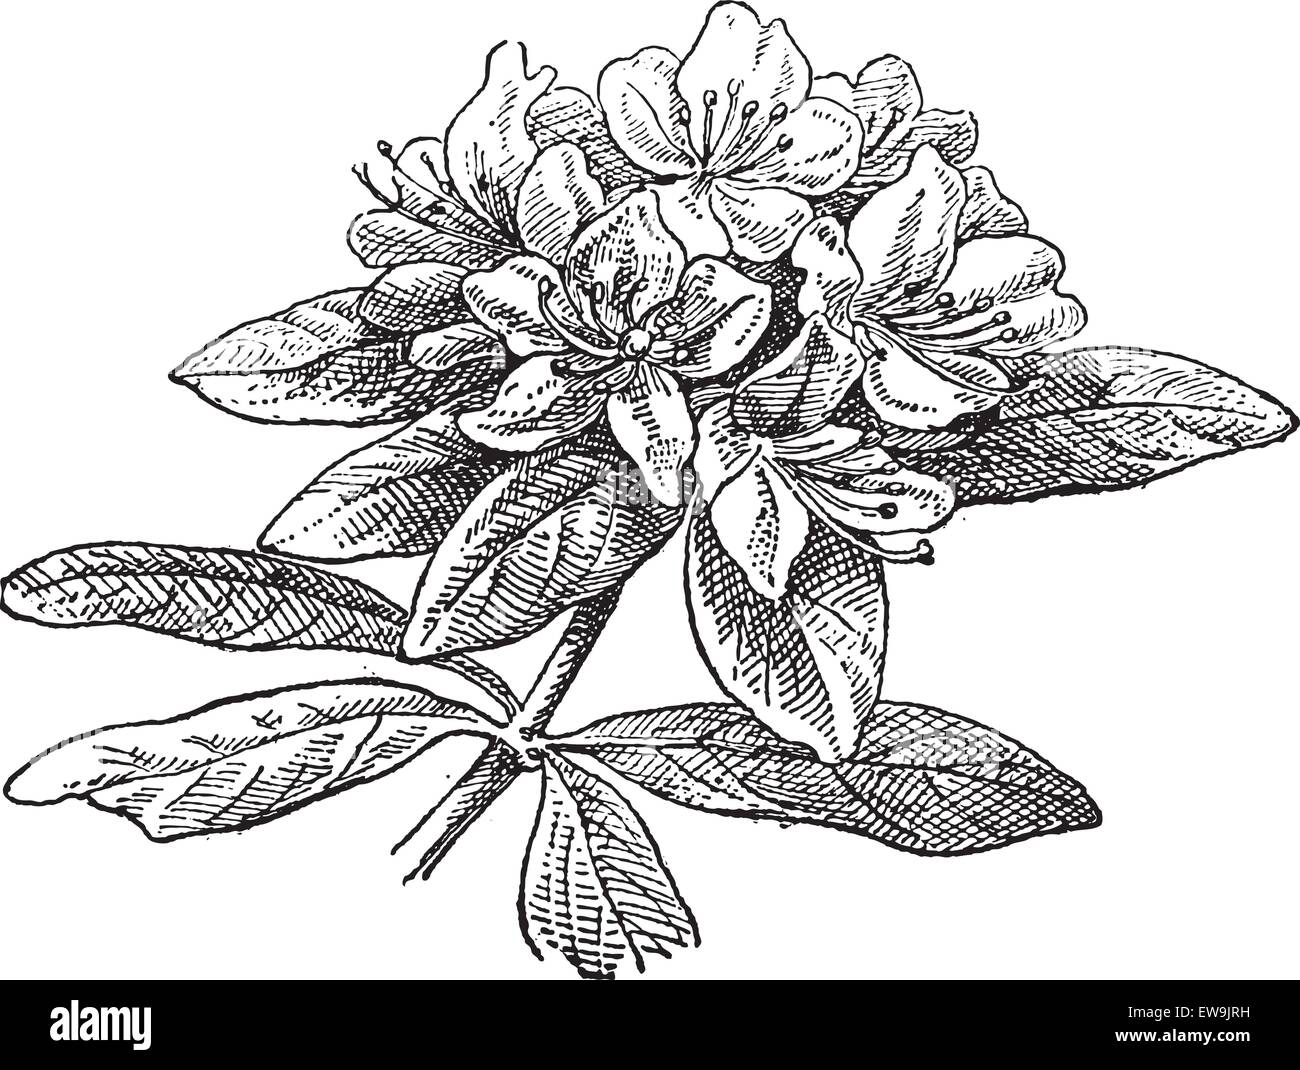 Rhododendron, vintage engraved illustration. Dictionary of words and things - Larive and Fleury - 1895. - Stock Vector